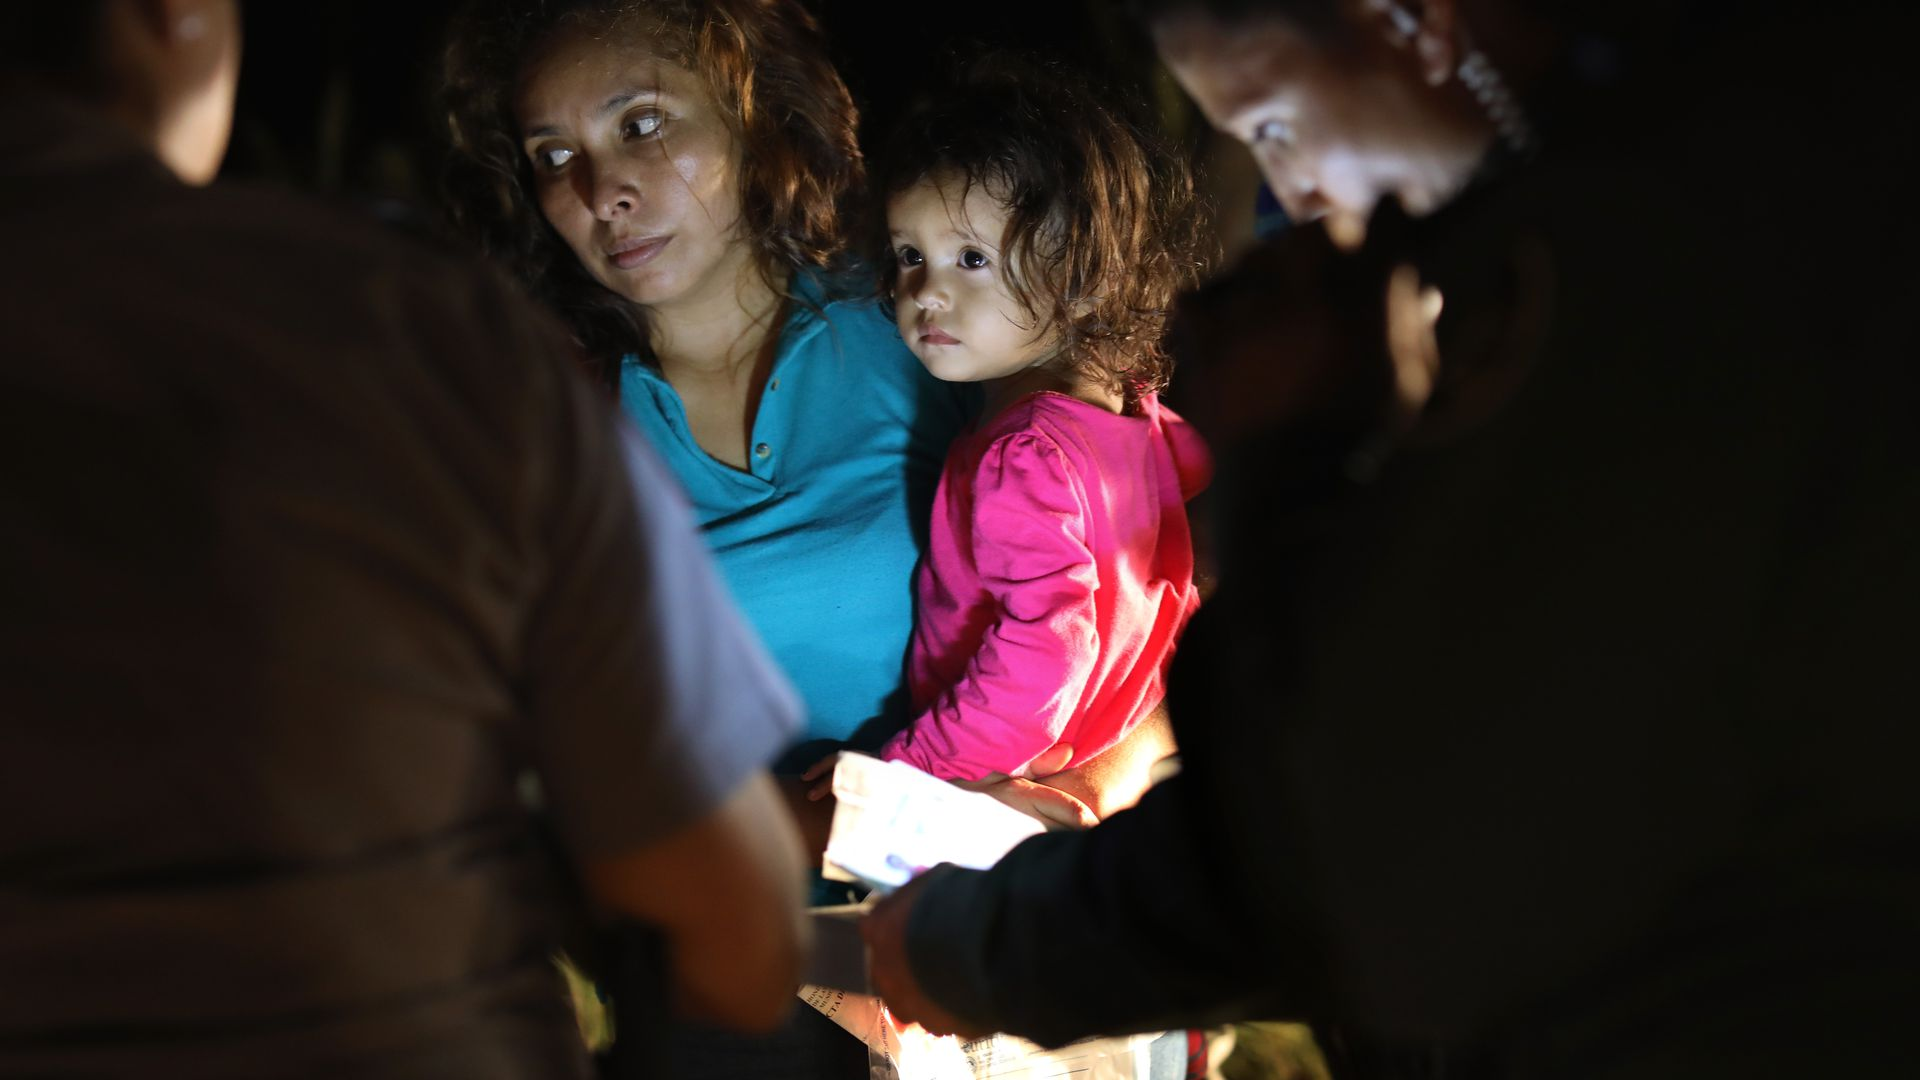 An immigrant holds her daughter while having paperwork looked at by immigration law enforcement officials